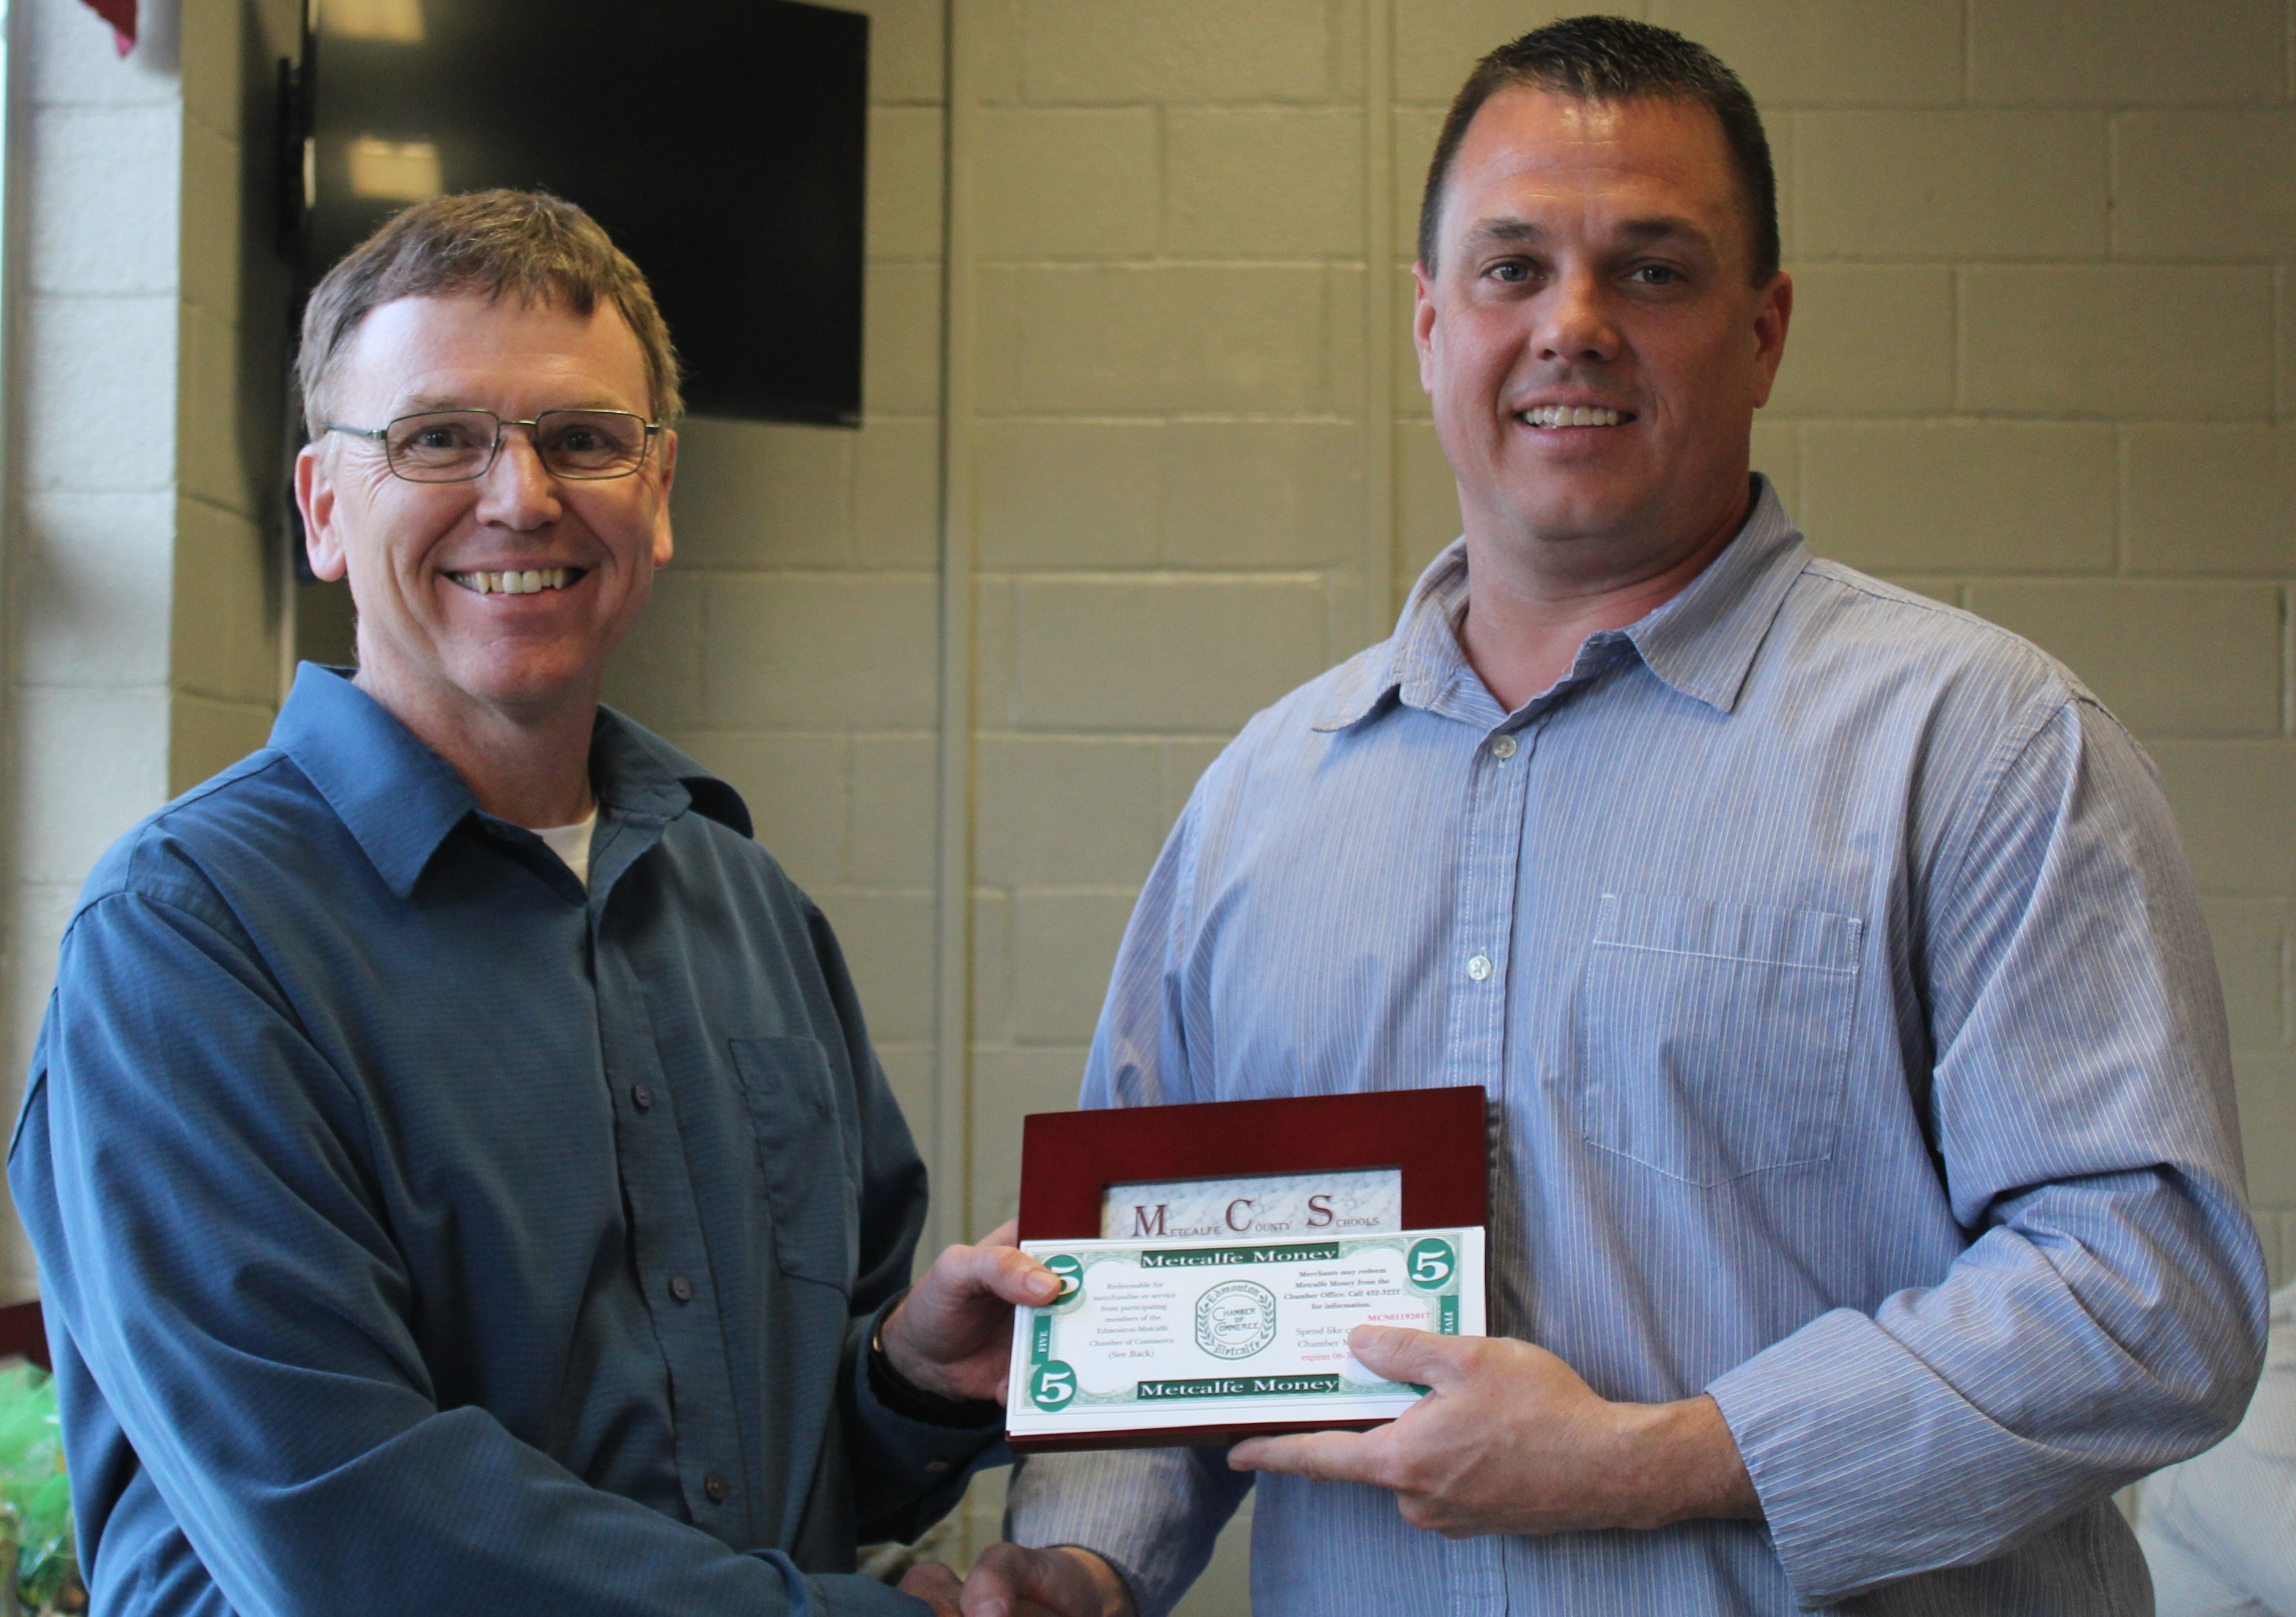 John VanMeter Selected As Teacher of the Month